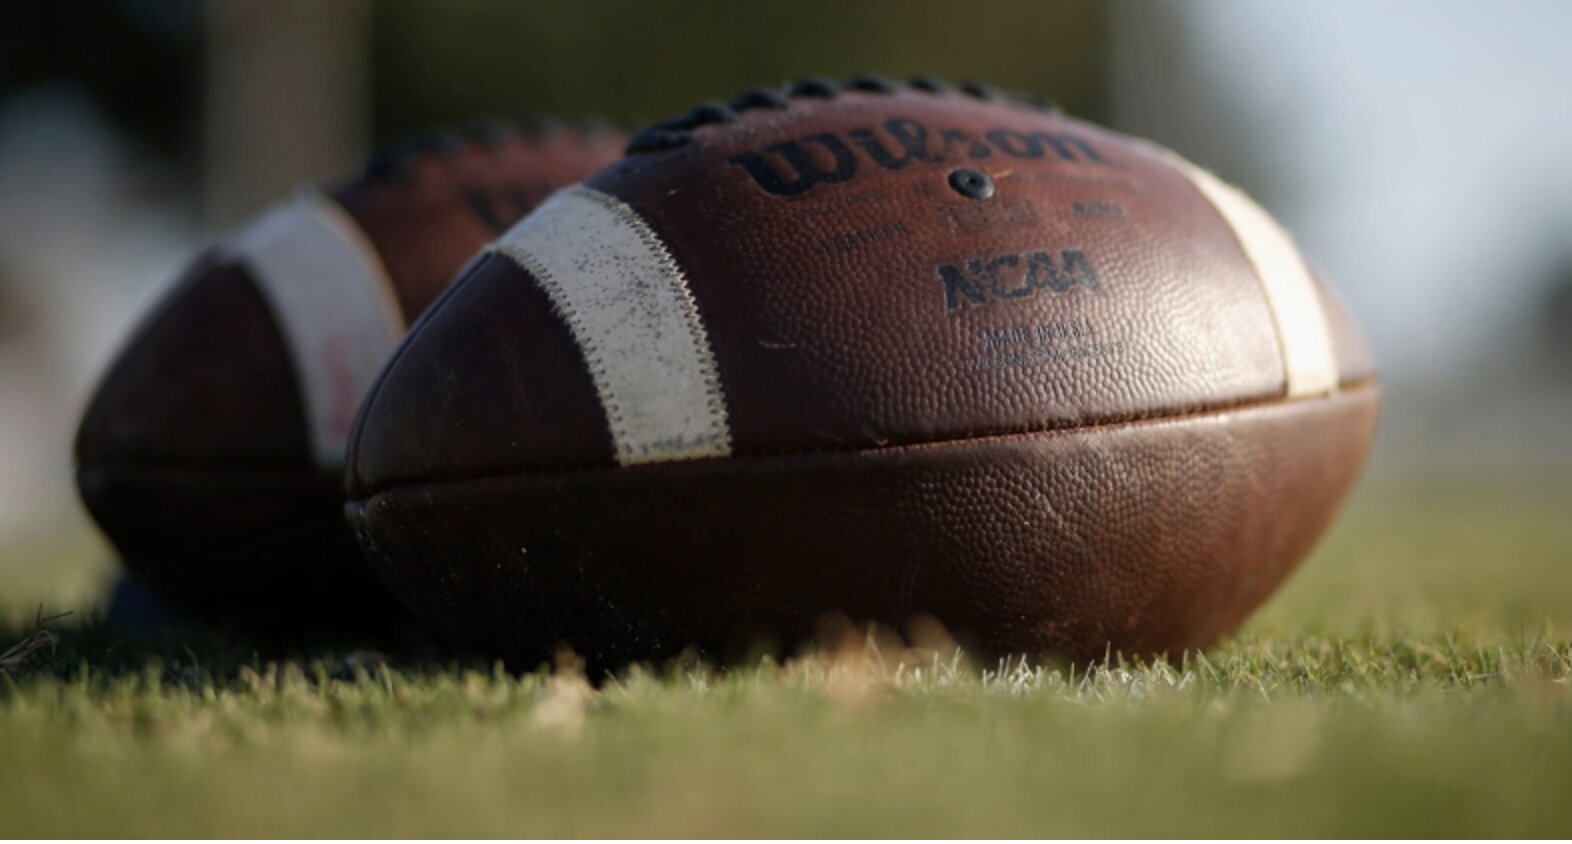 OVER 1,000 HS FOOTBALL GAMES ALREADY PLAYED WITH NO COVID SPREAD